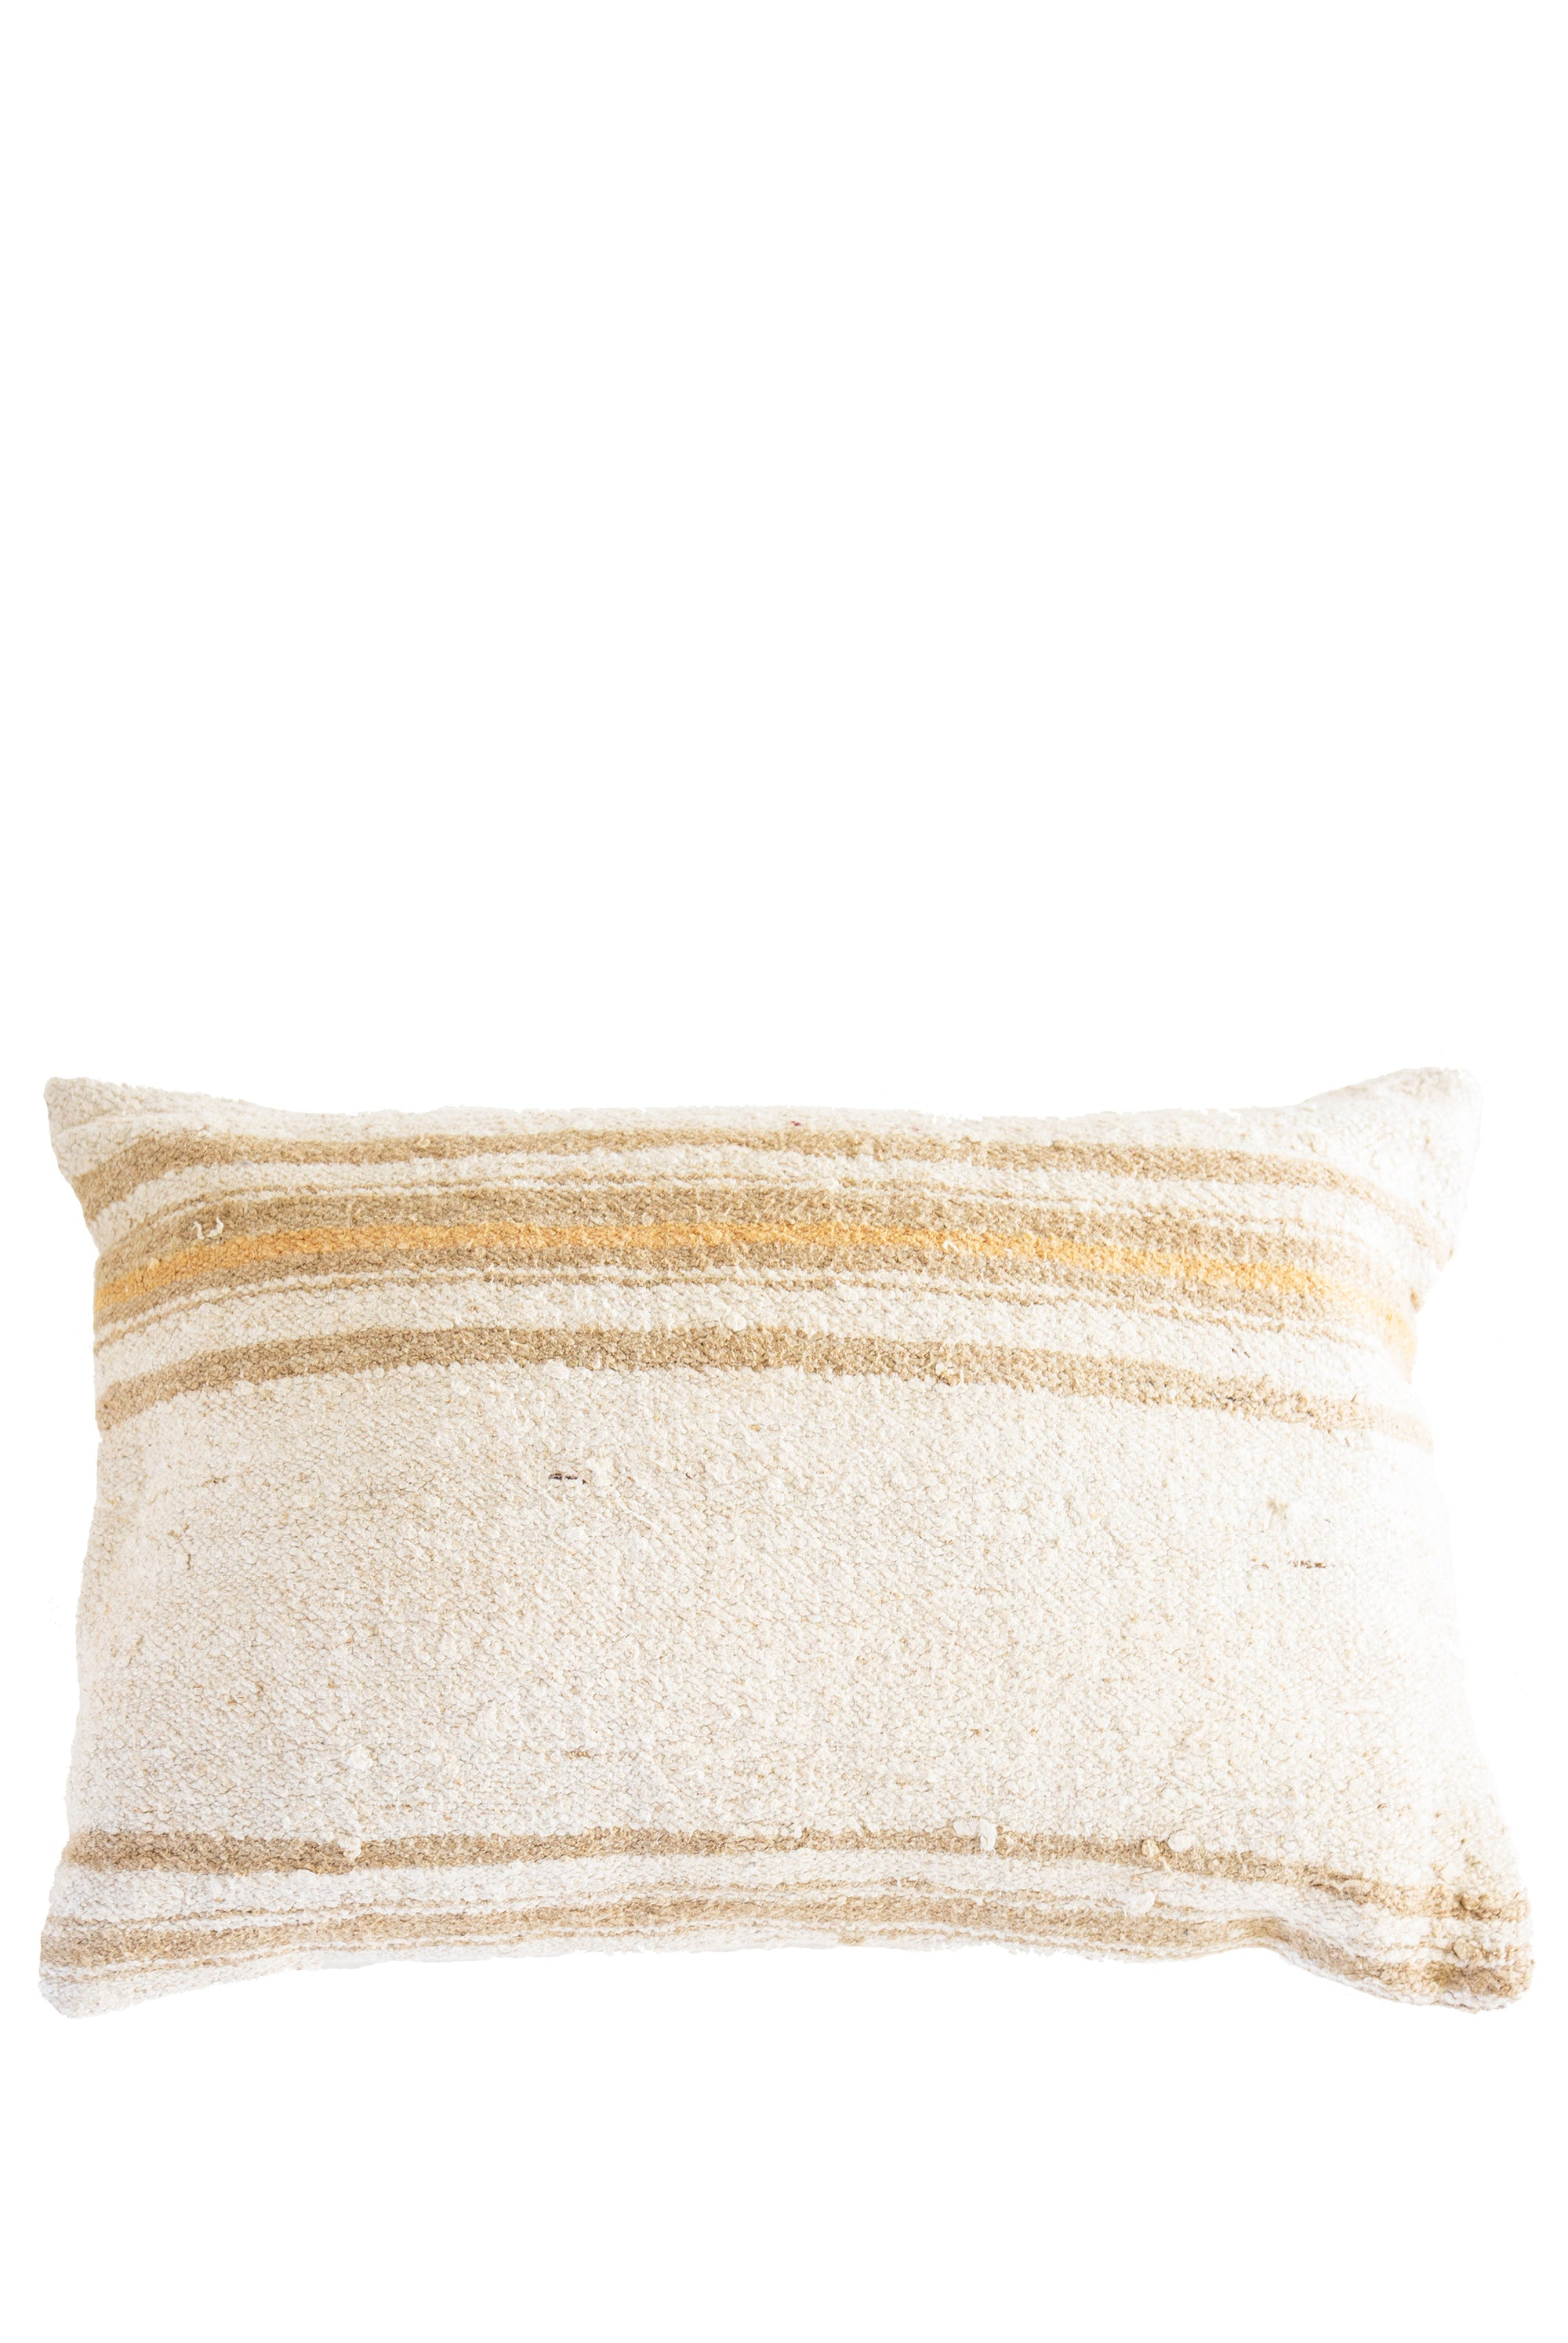 Lucida Turkish Kilim Cushion